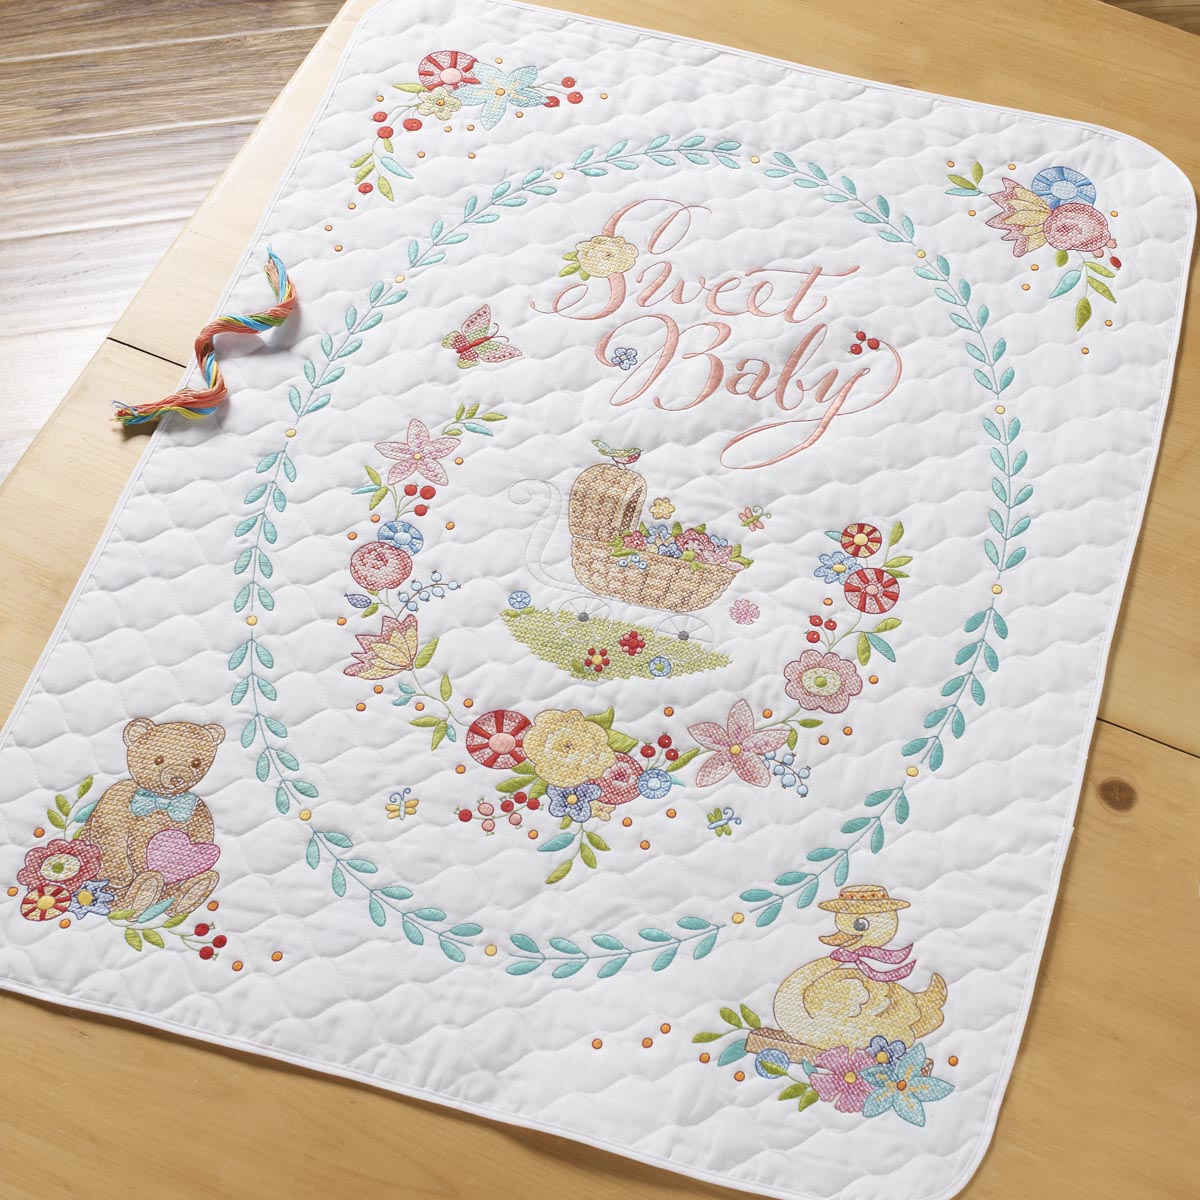 Bucilla ® Baby - Stamped Cross Stitch - Crib Ensembles - Sweet Baby - Crib Cover Kit